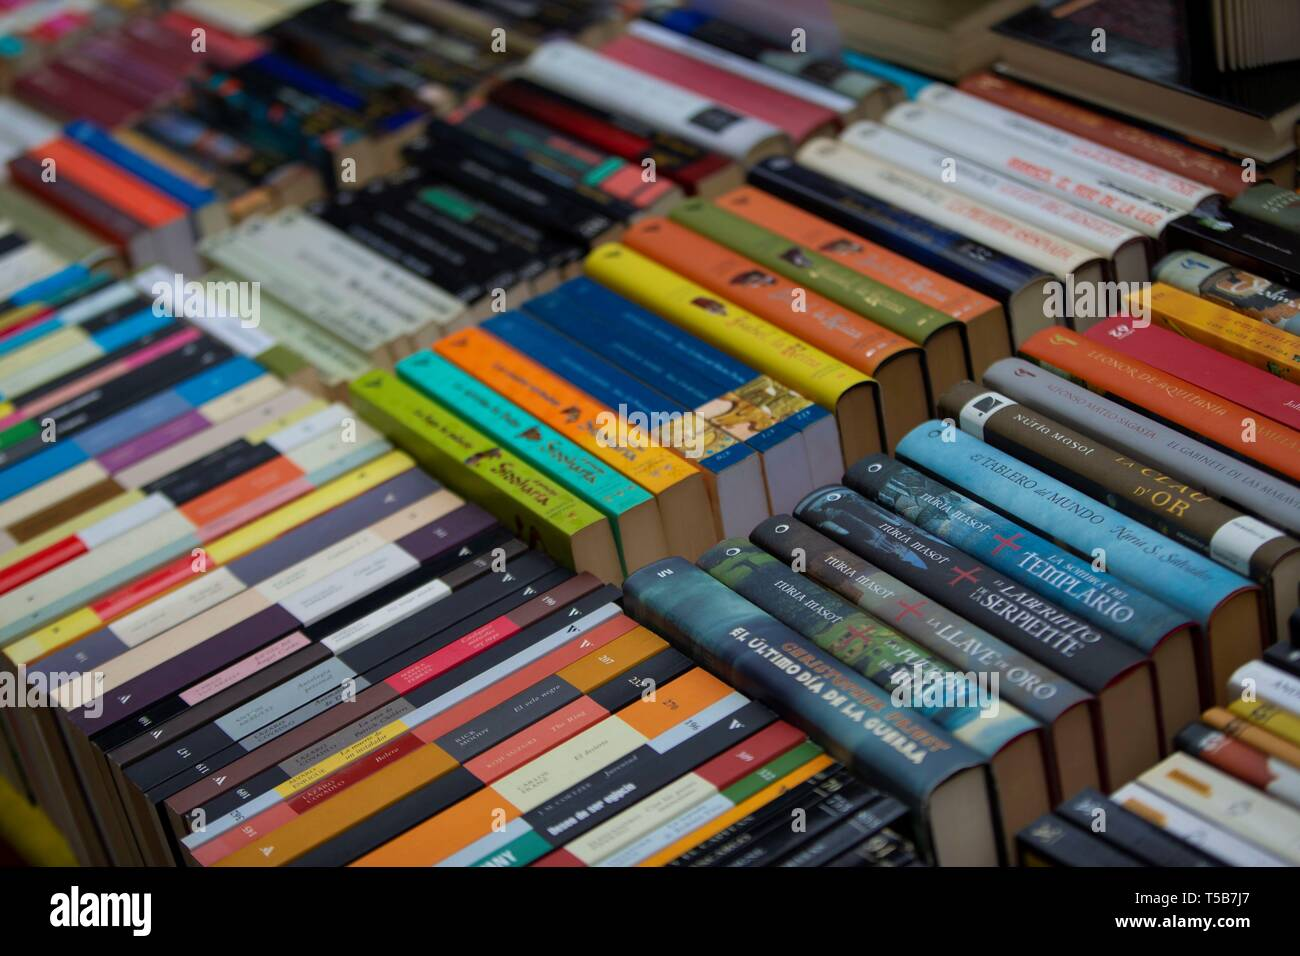 Barcelona, Spain  23rd Apr, 2019  Books are displayed at the